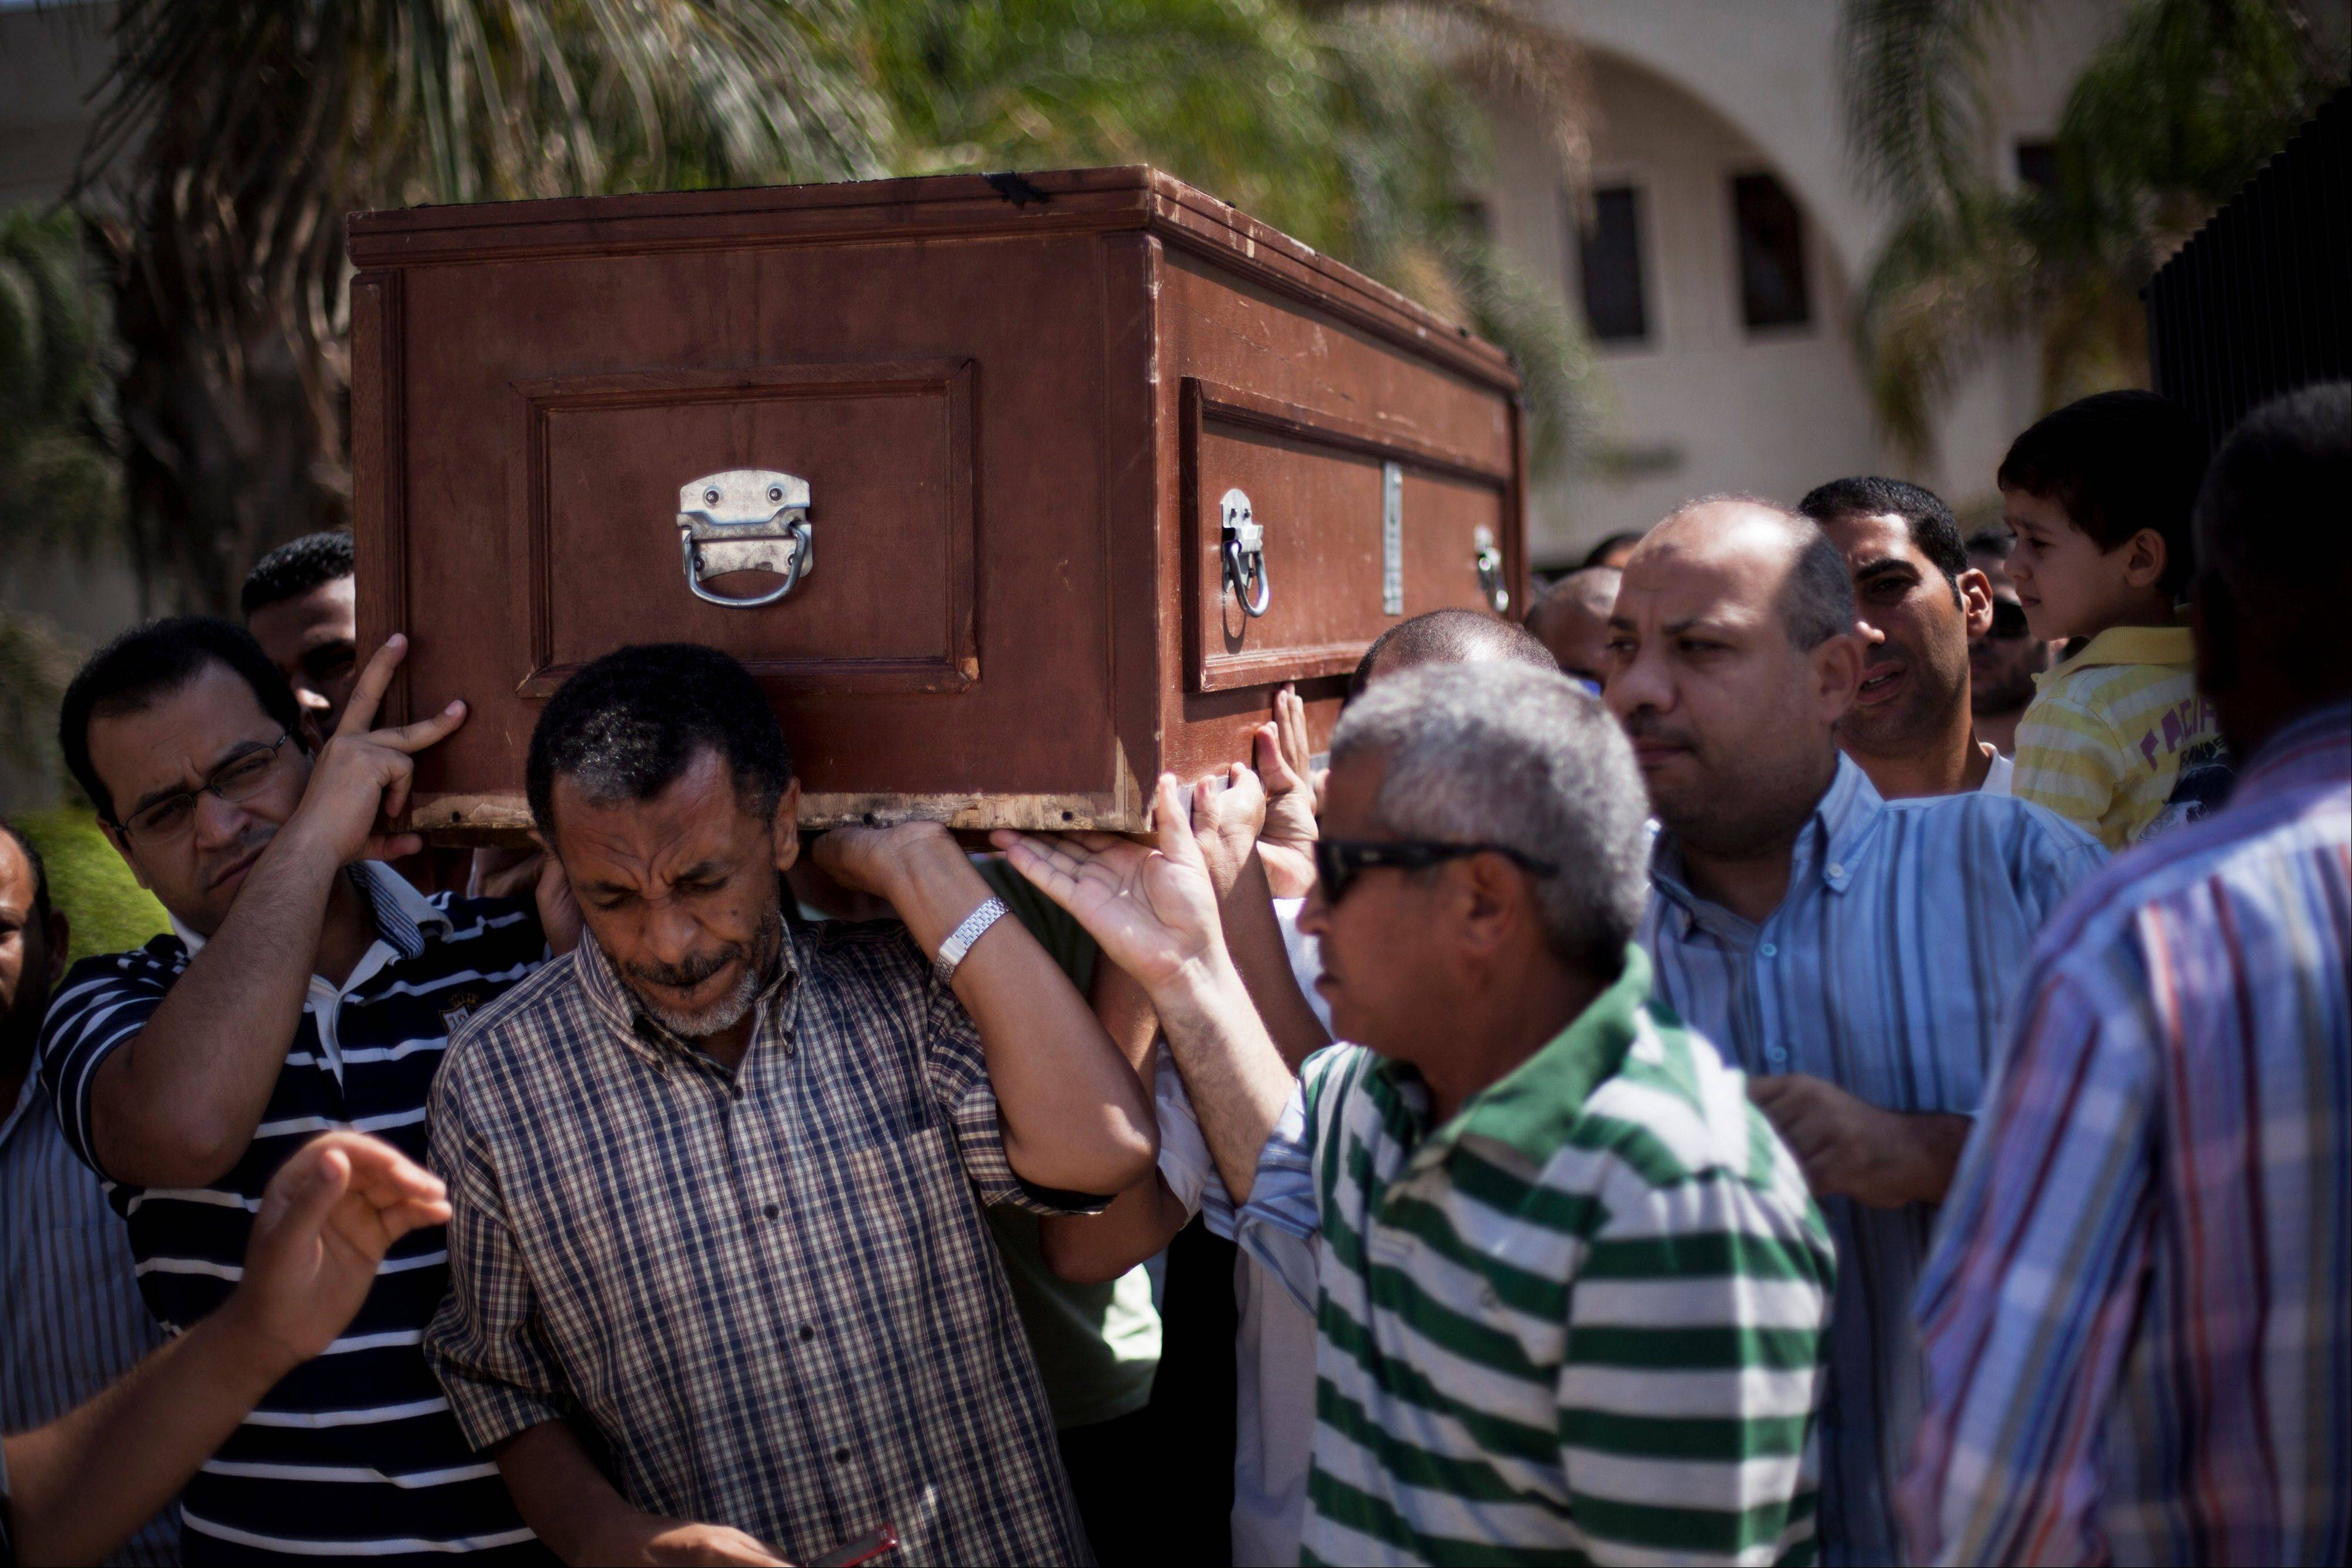 Friends and relatives of Ammar Badie, 38, killed Friday by Egyptian security forces during clashes in Ramses Square, and also son of Muslim Brotherhood's spiritual leader Mohammed Badie, carry his coffin during his funeral in al-Hamed mosque in Cairo's Katameya district, Egypt, Sunday.